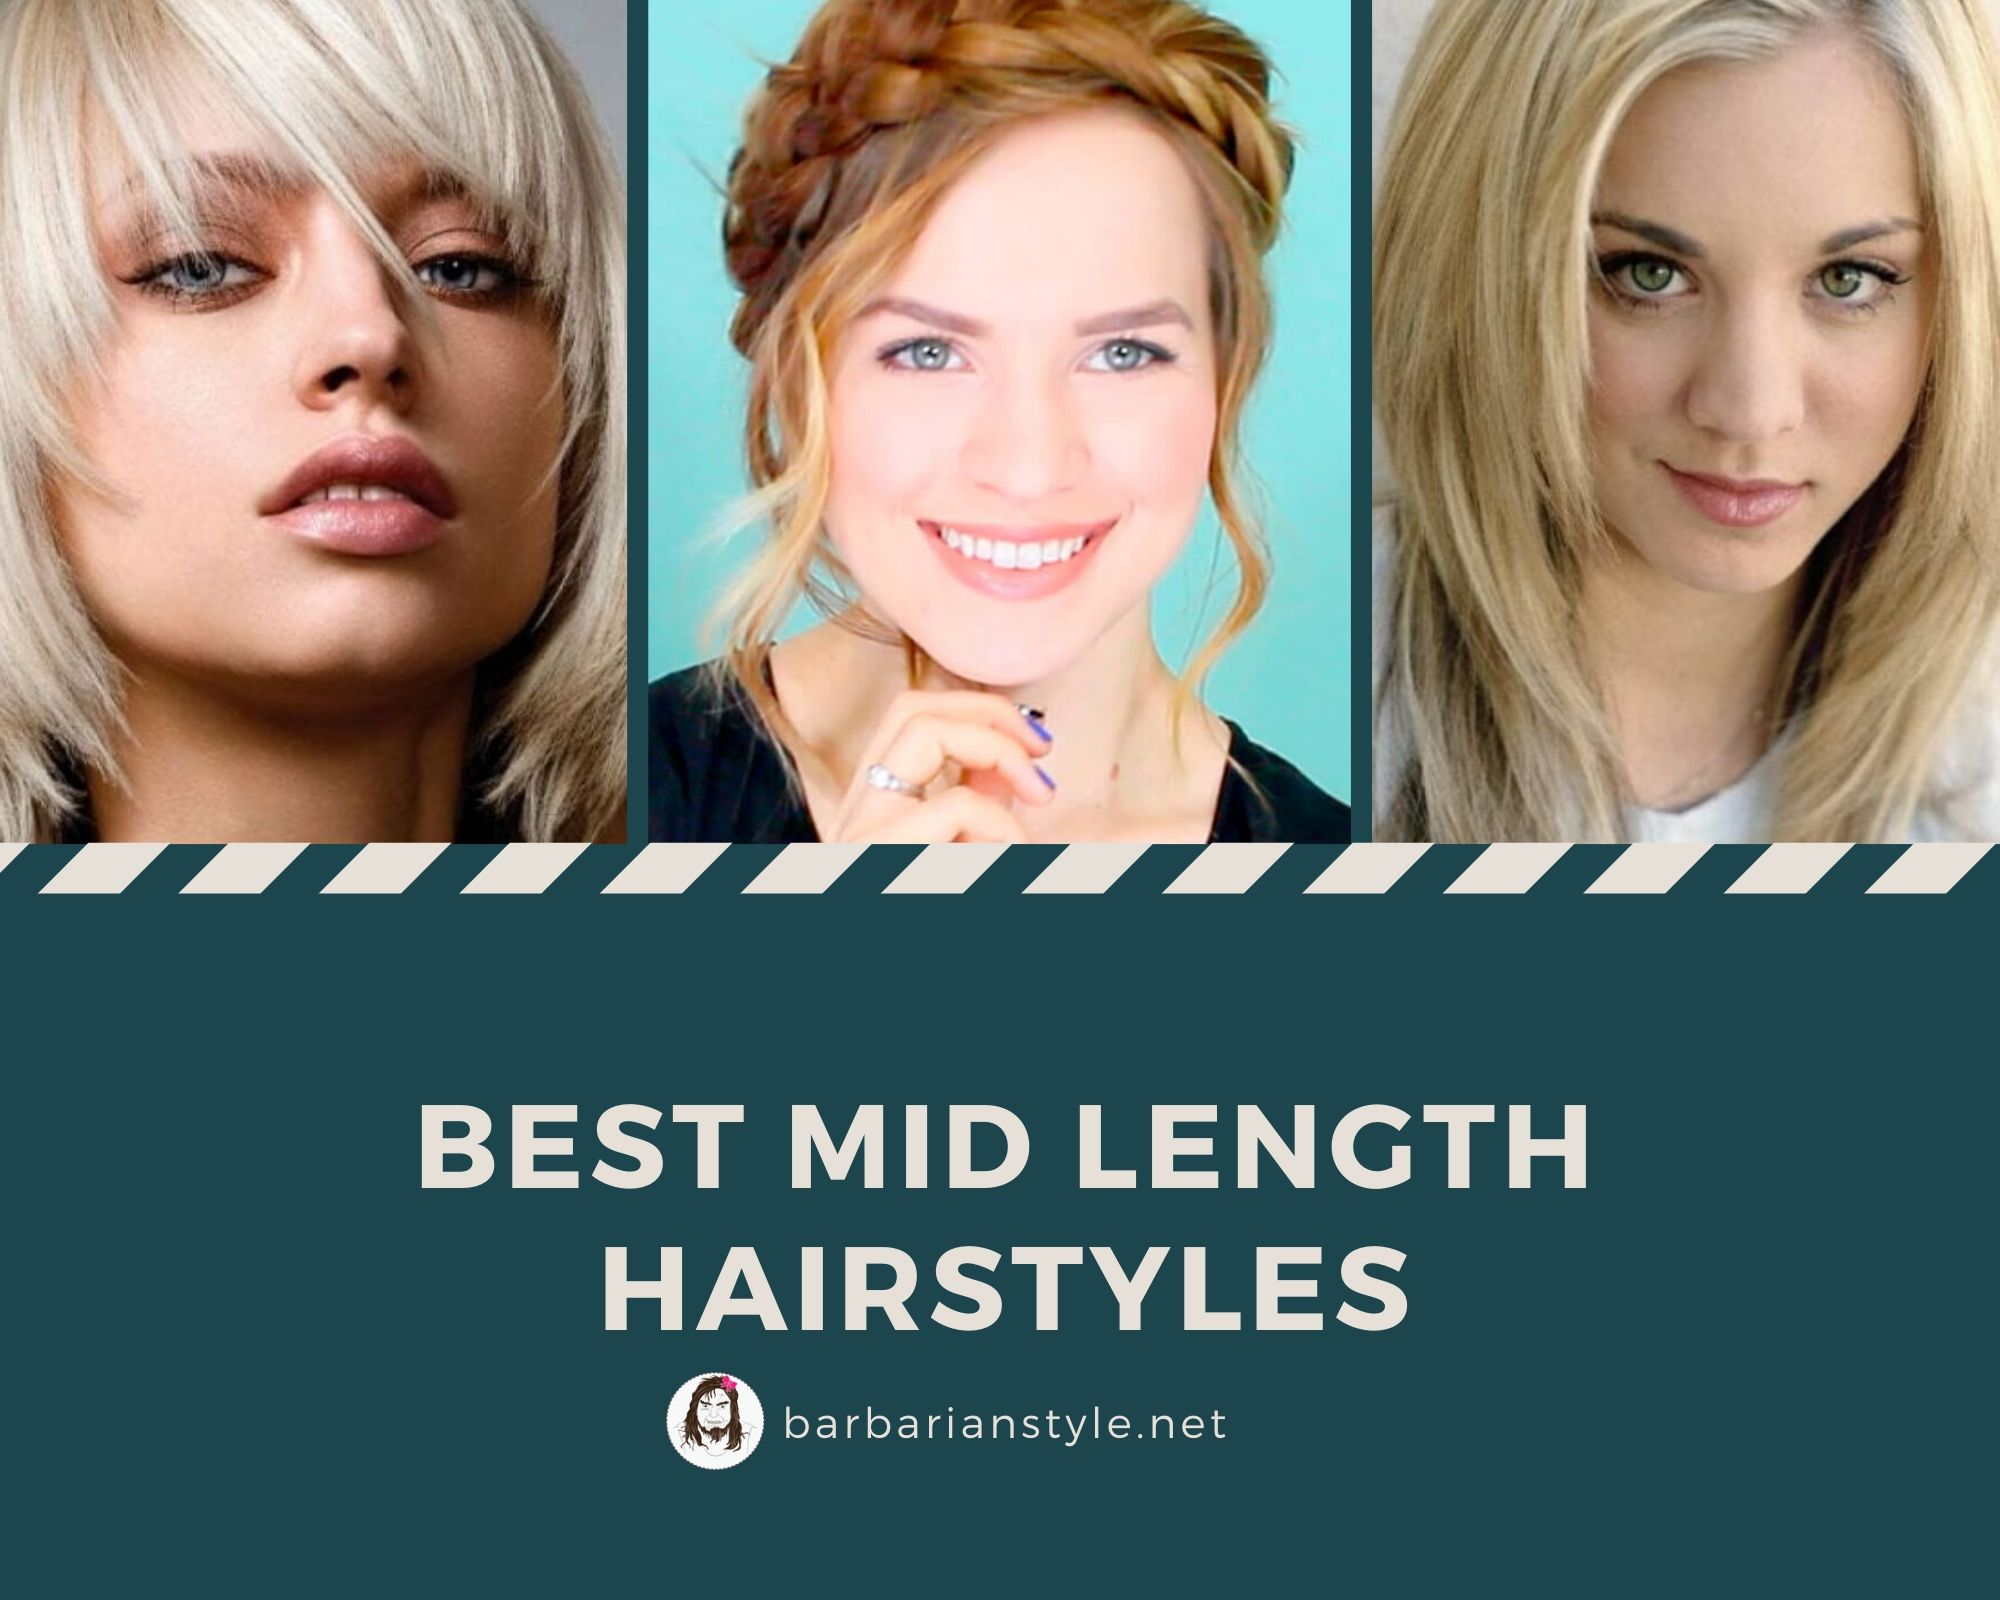 Best mid length hairstyles in 2020 for attractive women